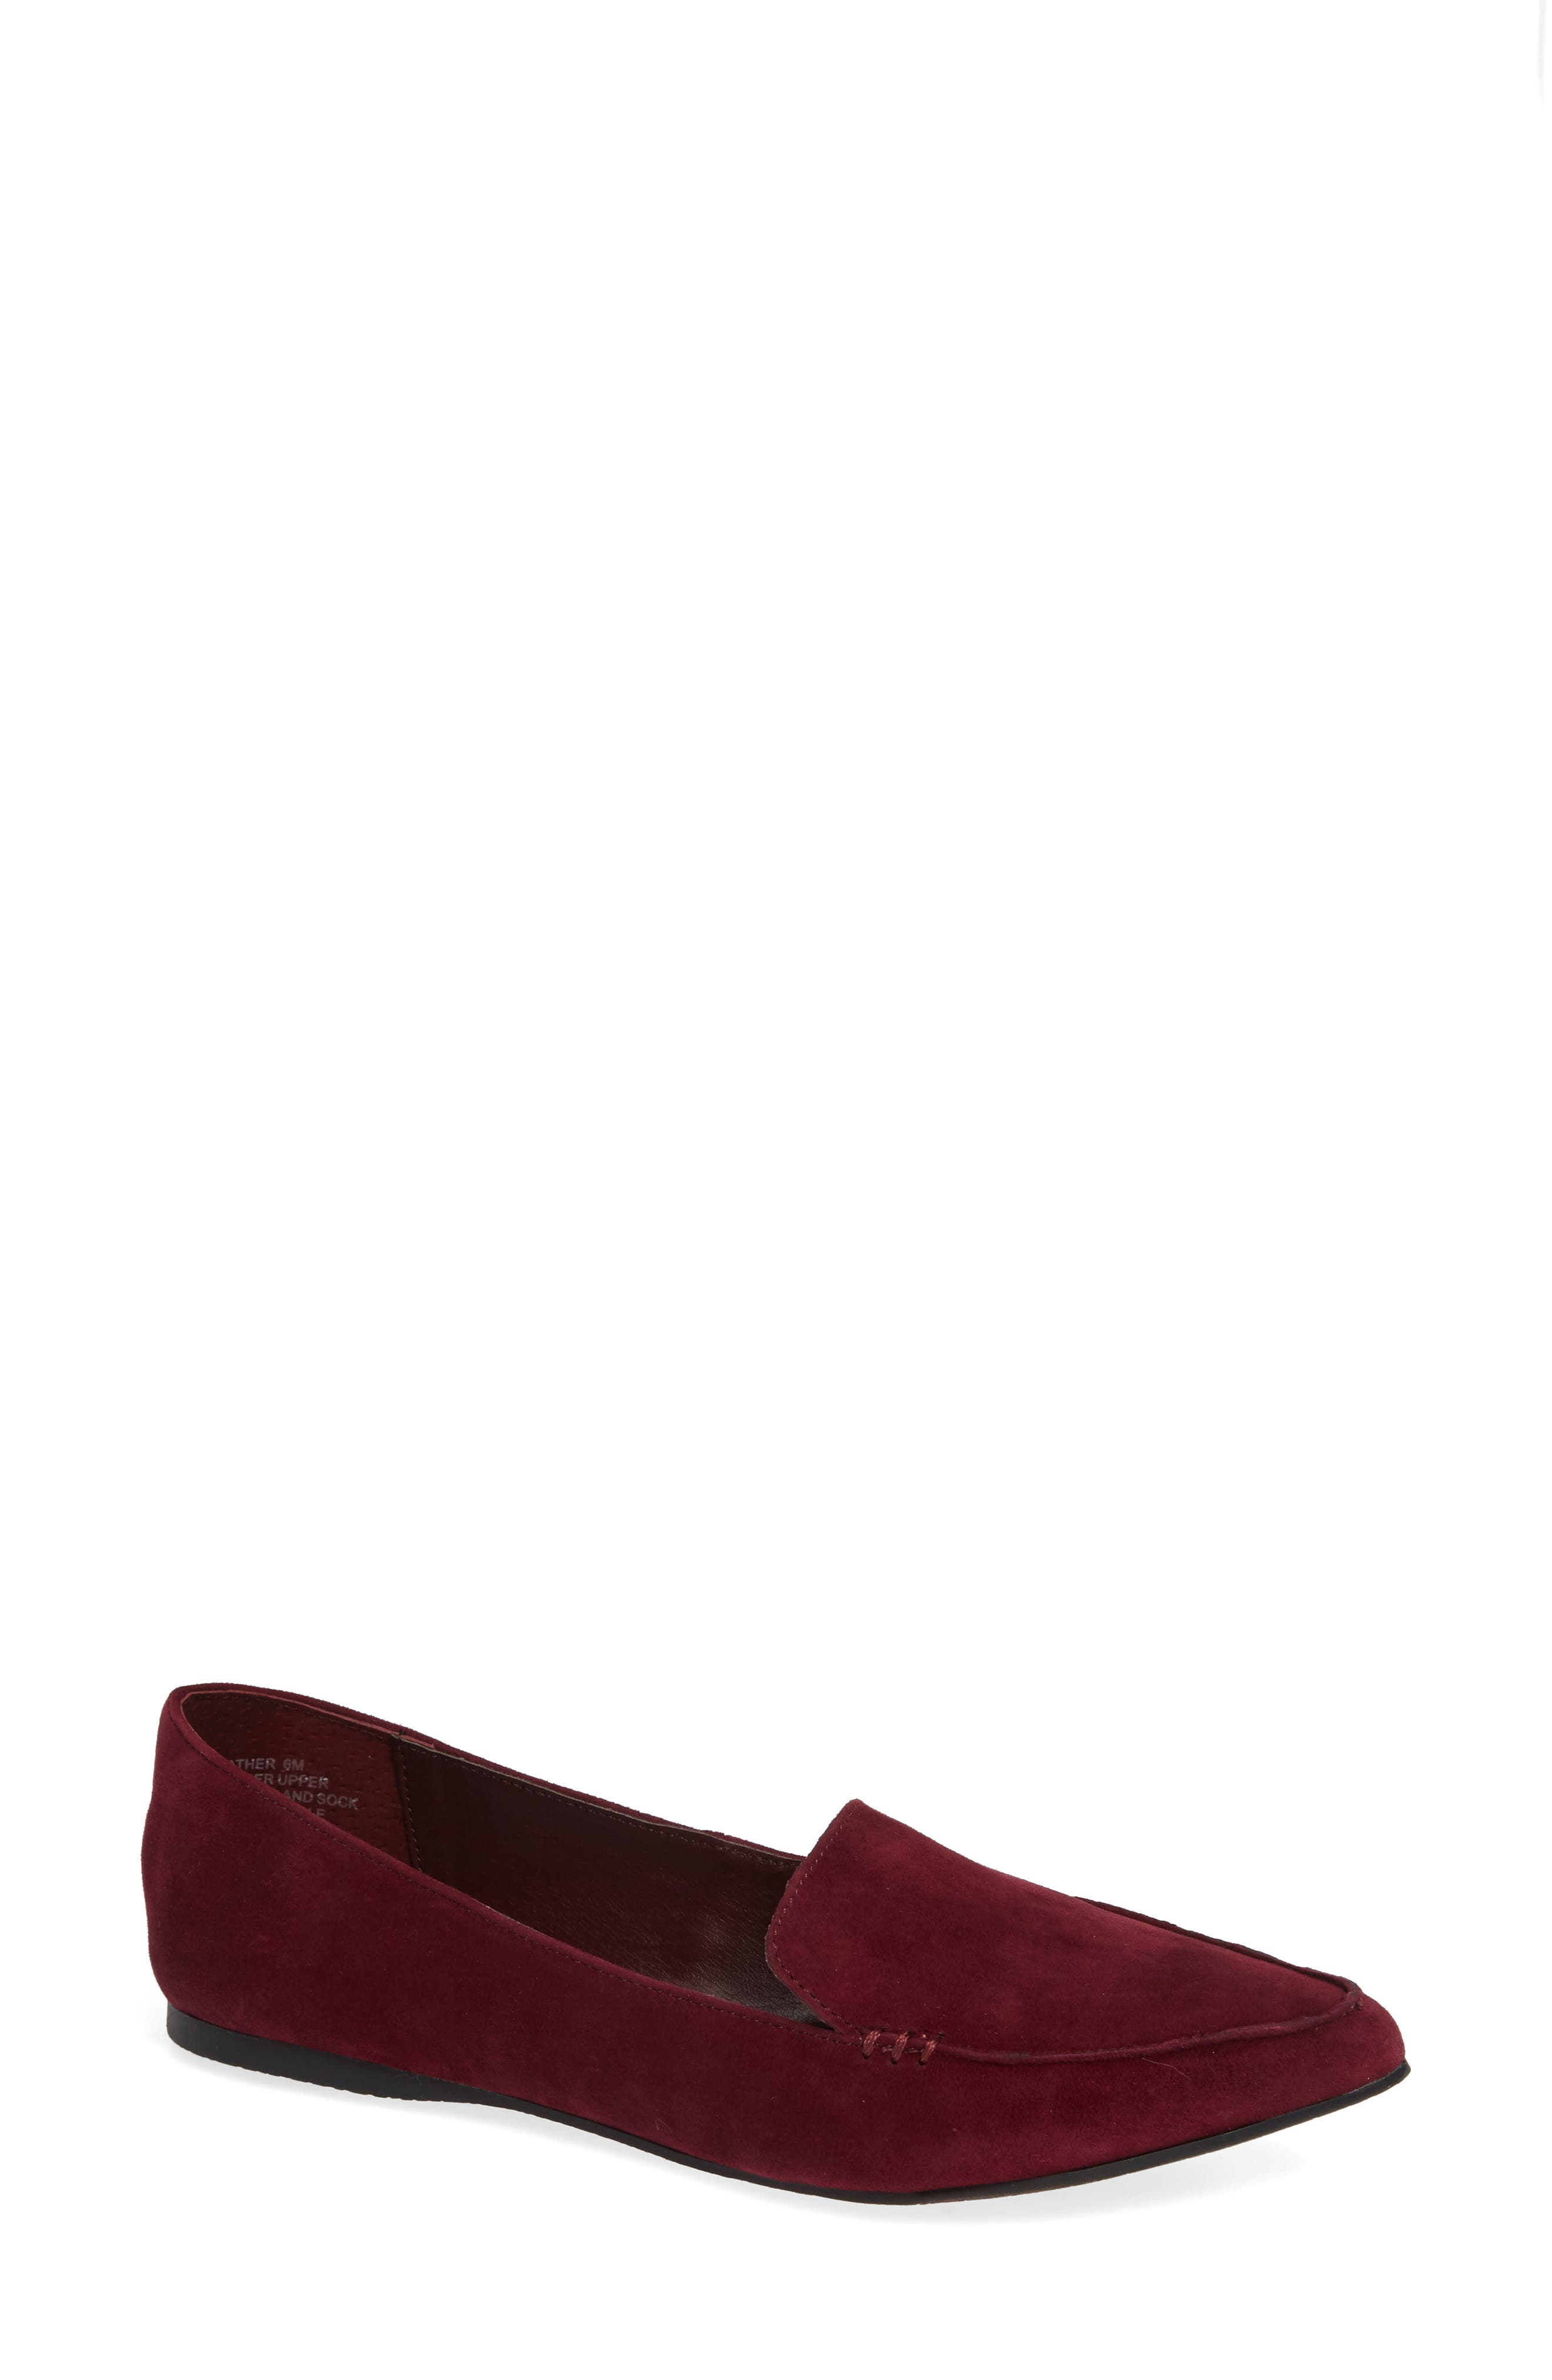 Feather Loafer Flat,                             Main thumbnail 1, color,                             BURGUNDY